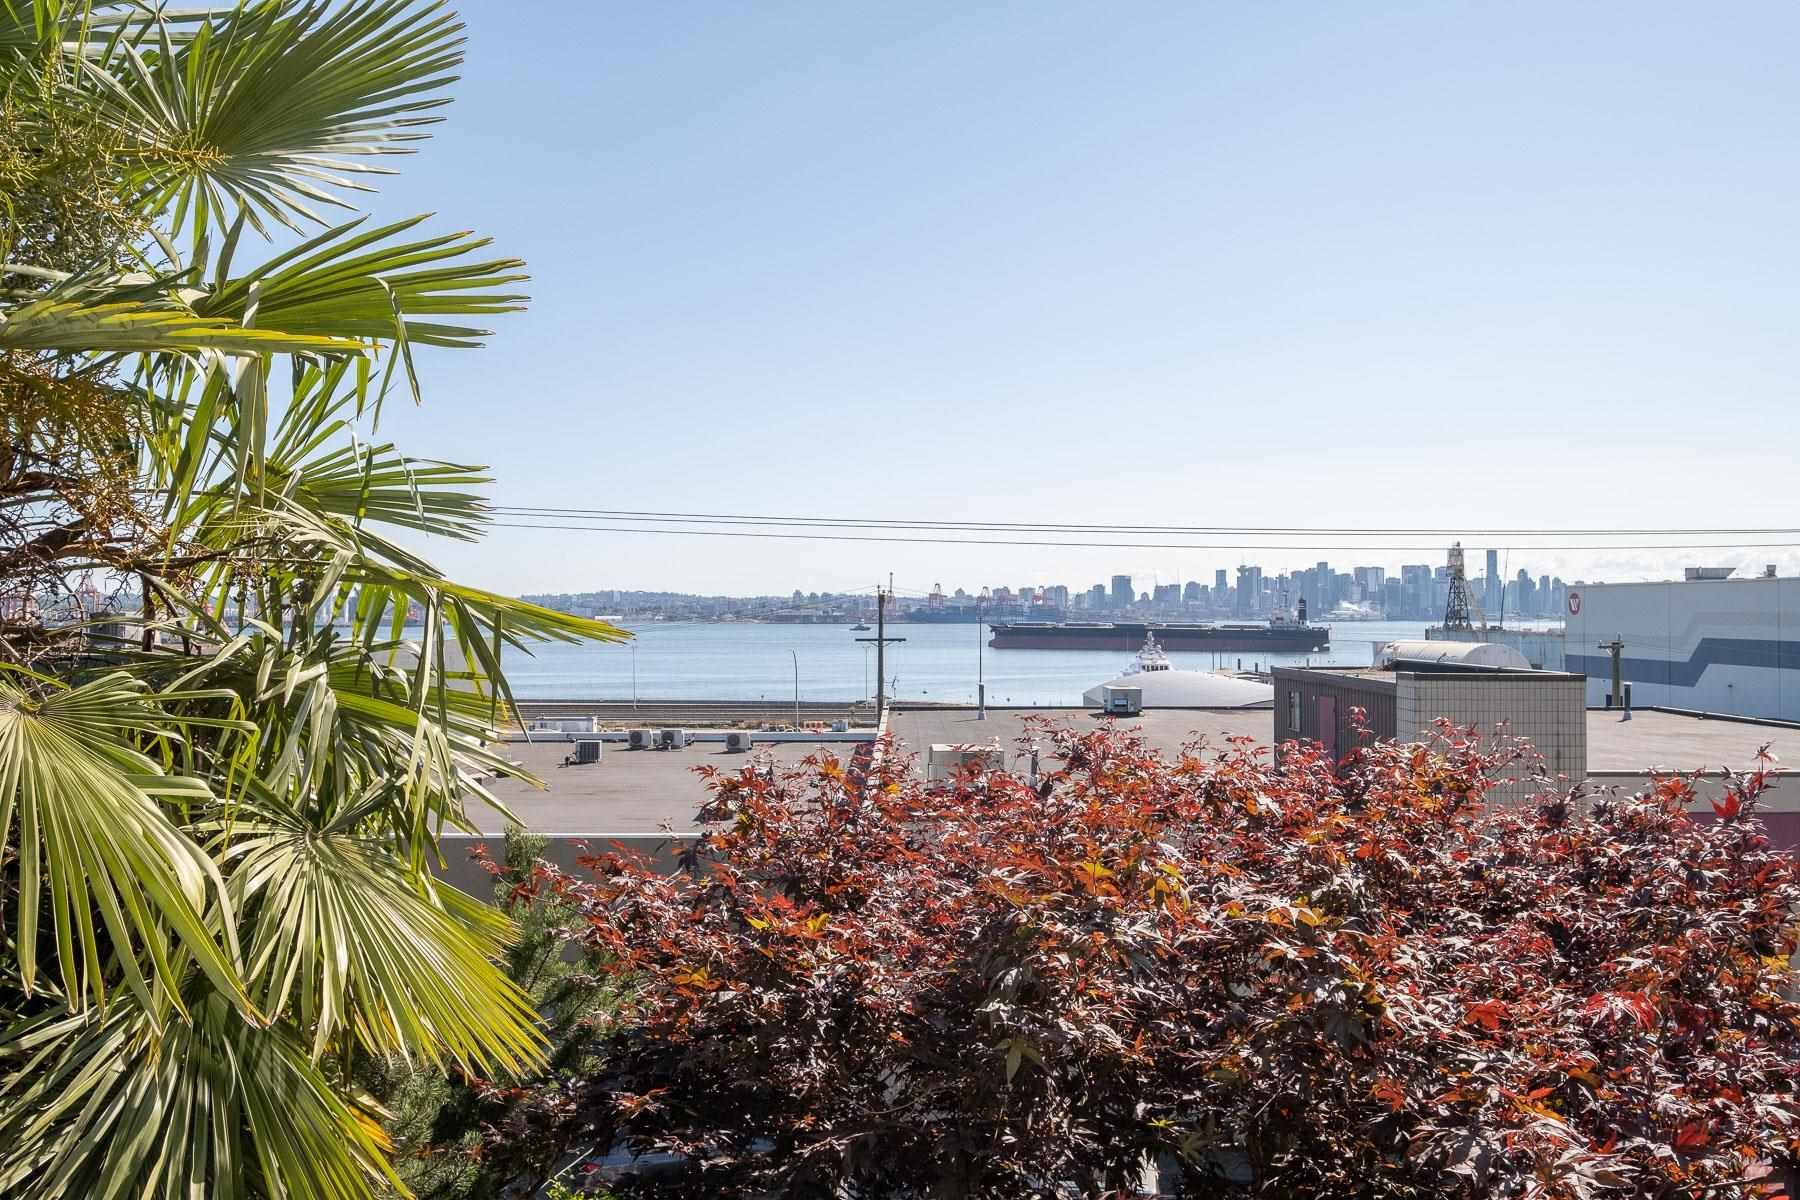 """Main Photo: 205 333 E 1ST Street in North Vancouver: Lower Lonsdale Condo for sale in """"Vista West"""" : MLS®# R2618010"""